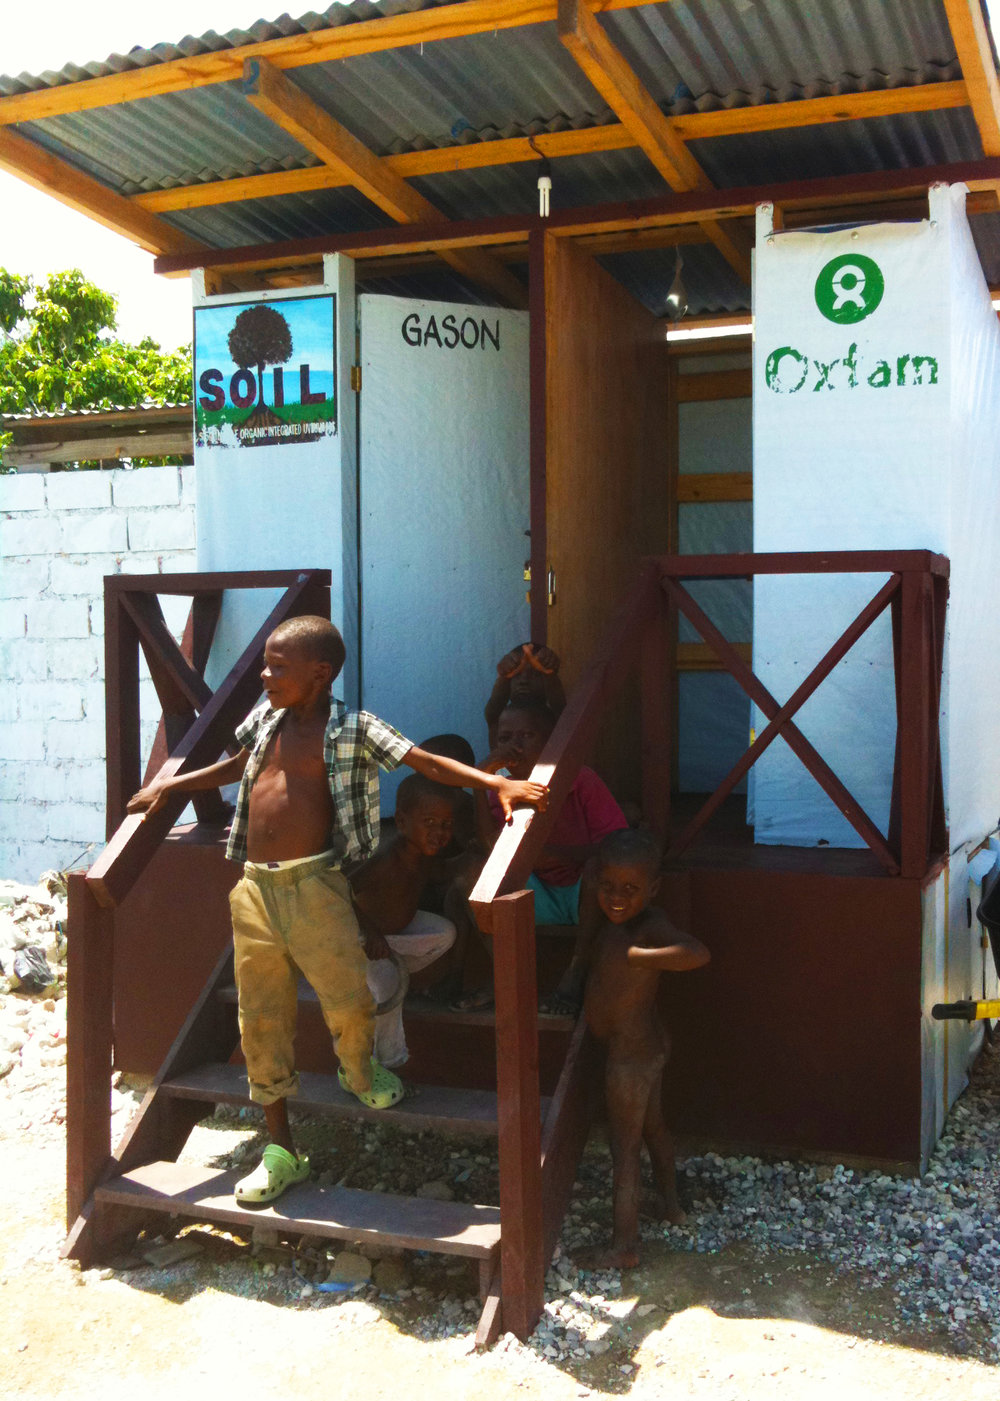 SOIL-run latrine in the Cite Soleil neighborhood of Port-au-Prince